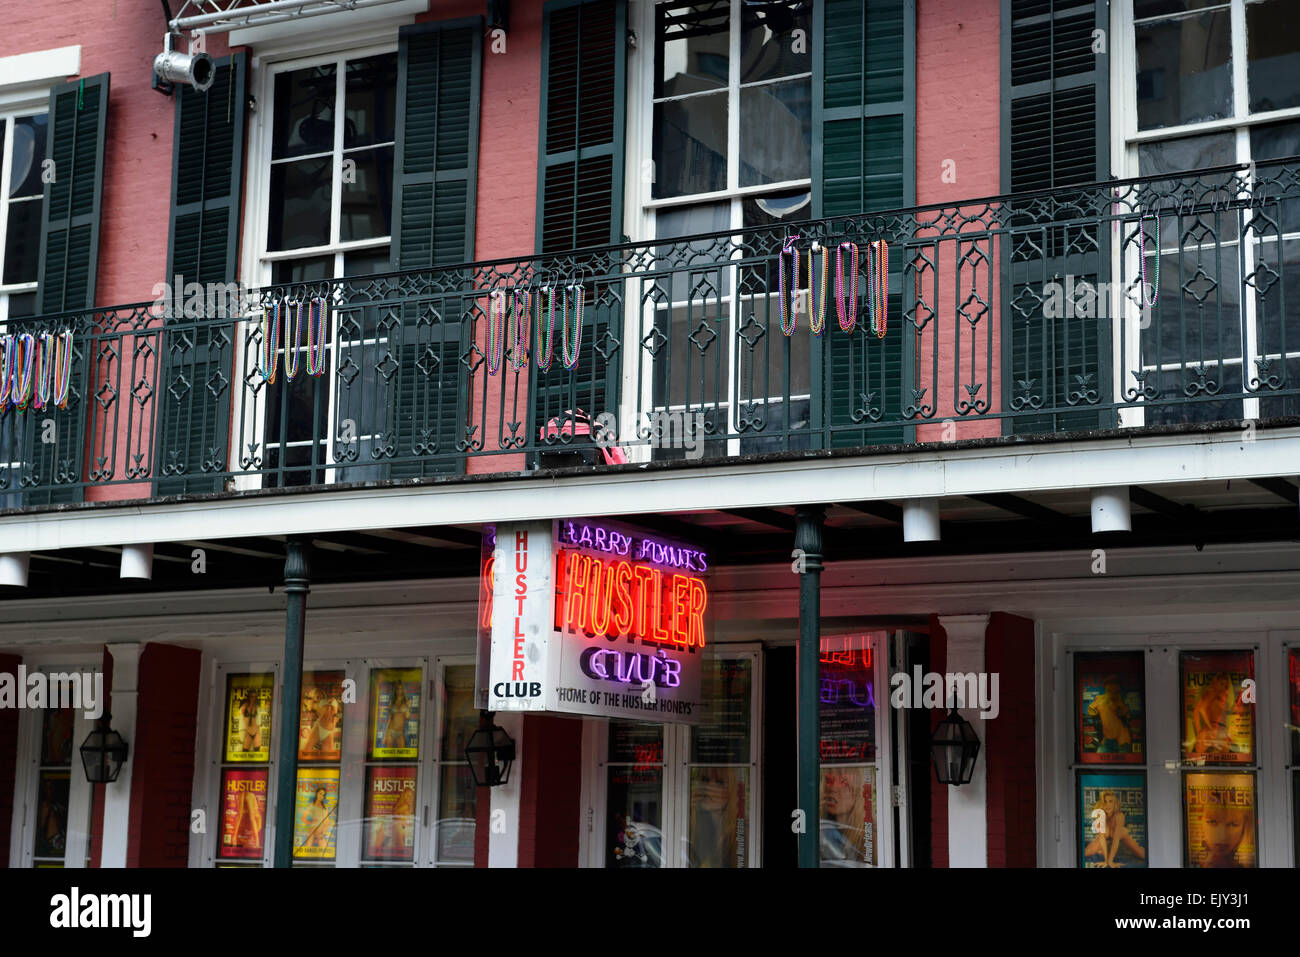 Club new orleans hustler strip opinion you are